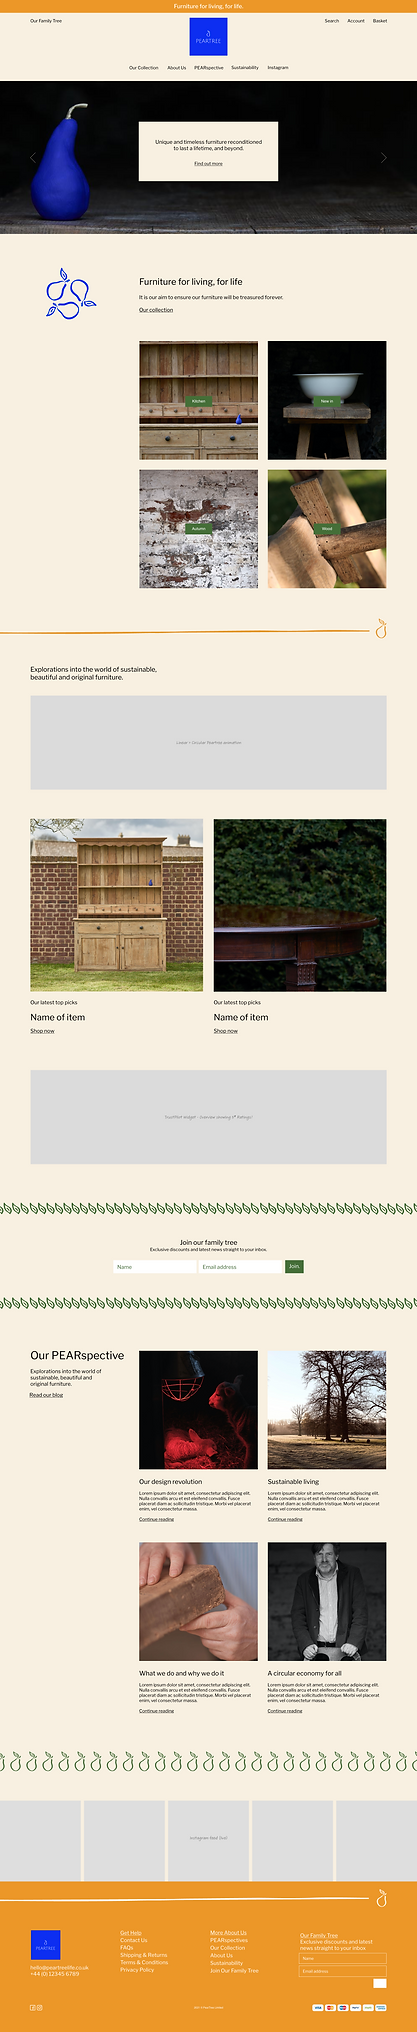 Homepage 1 peartree.png